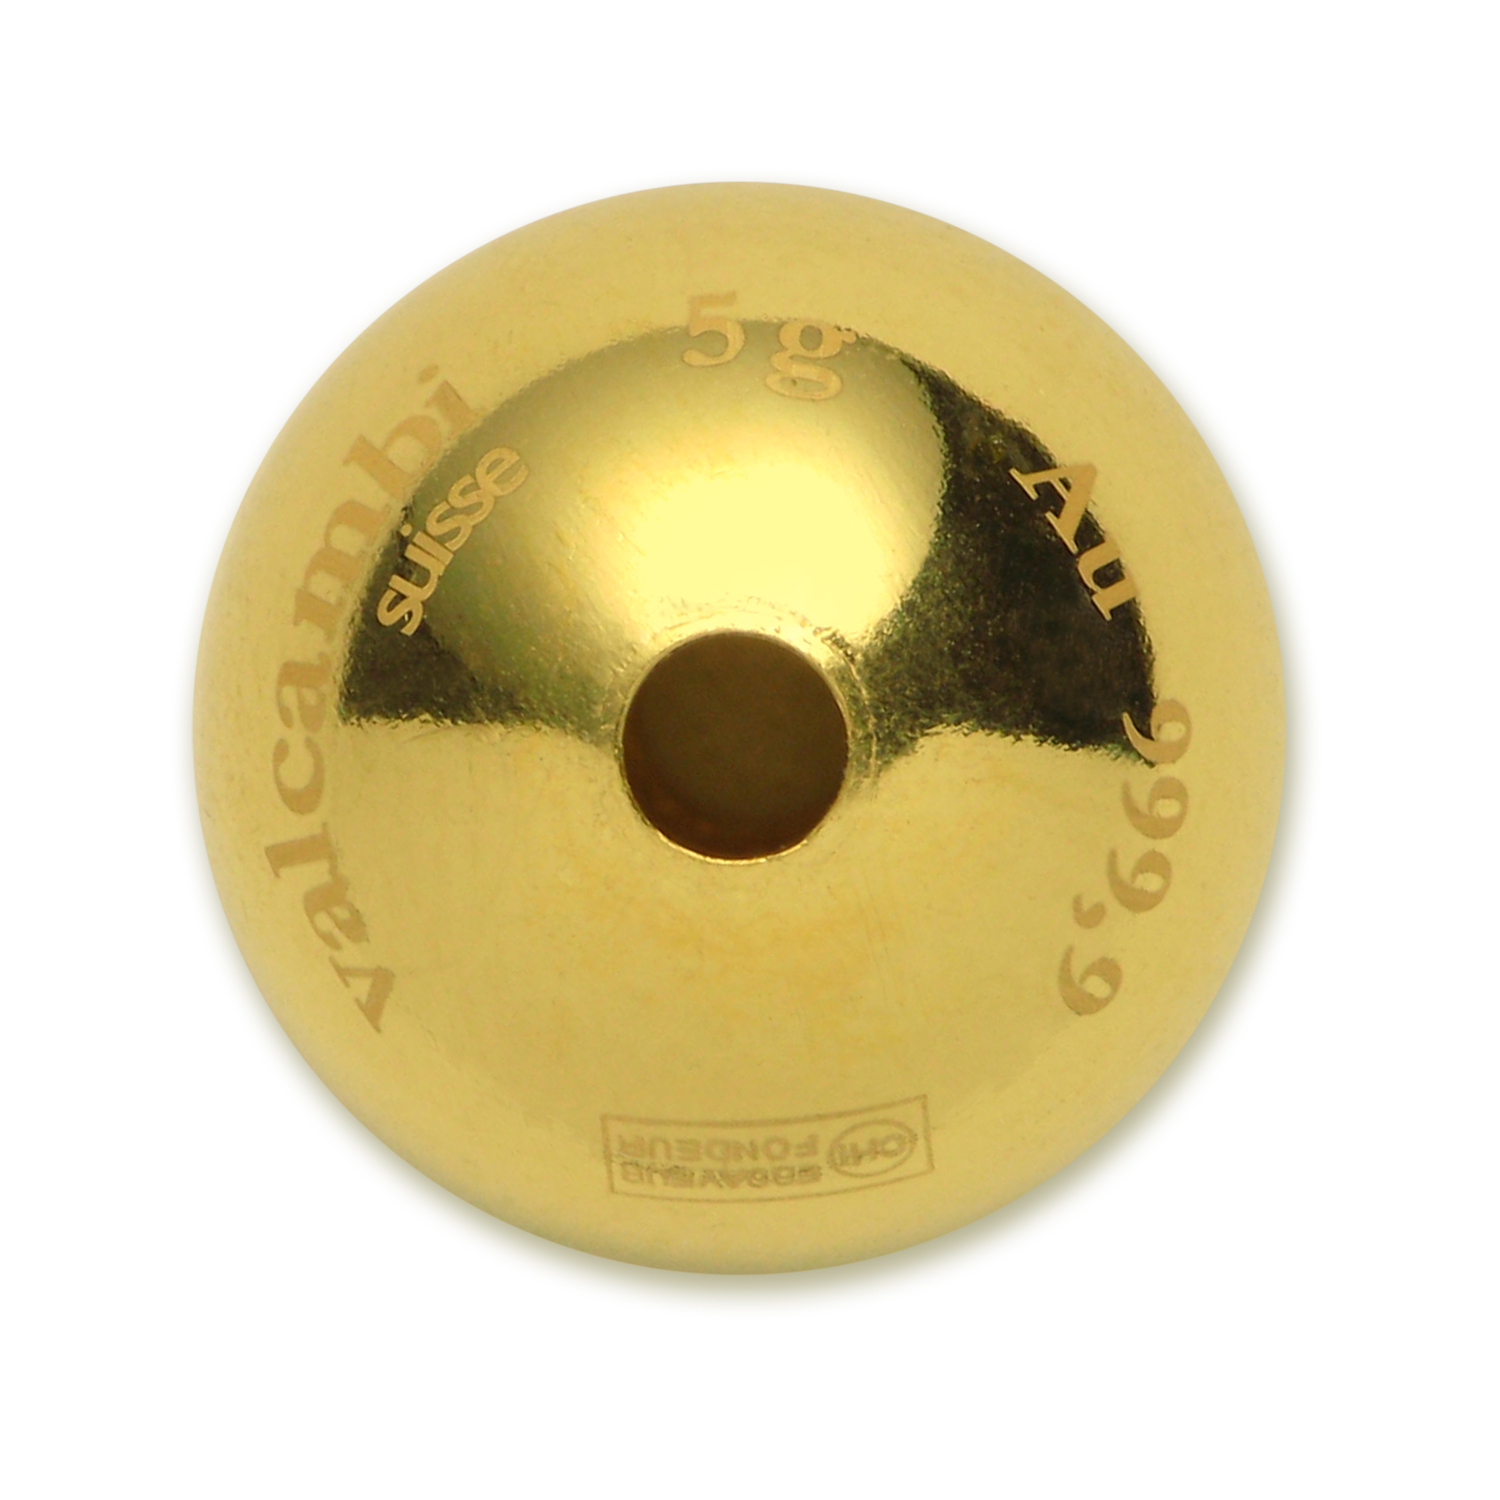 2015 5x 5 gram Cook Islands $20 Gold Sphere Coin Valcambi